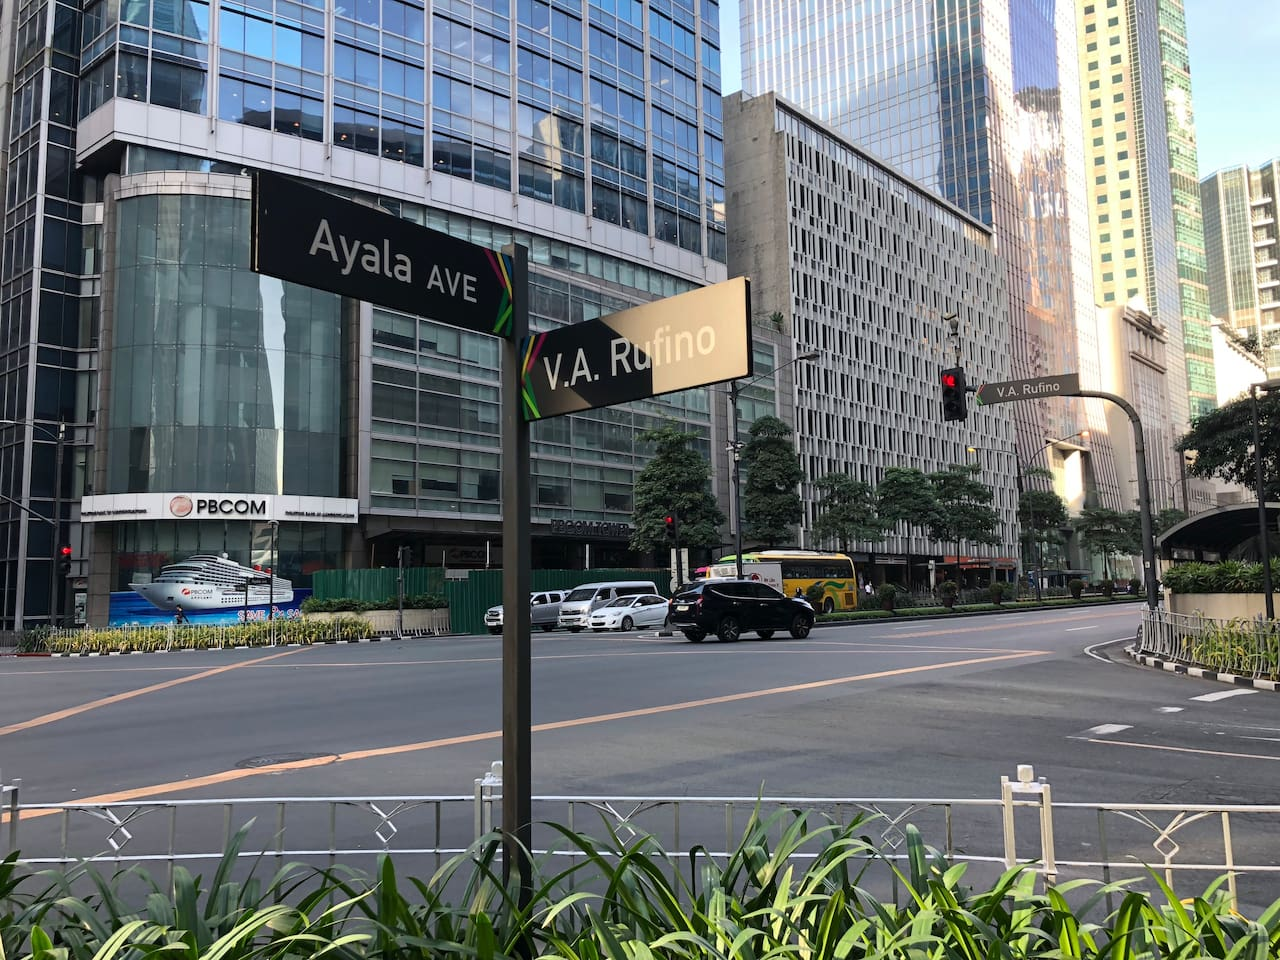 2 minutes walking to Ayala Avenue offices and 5 minutes walking to PBCOM Tower